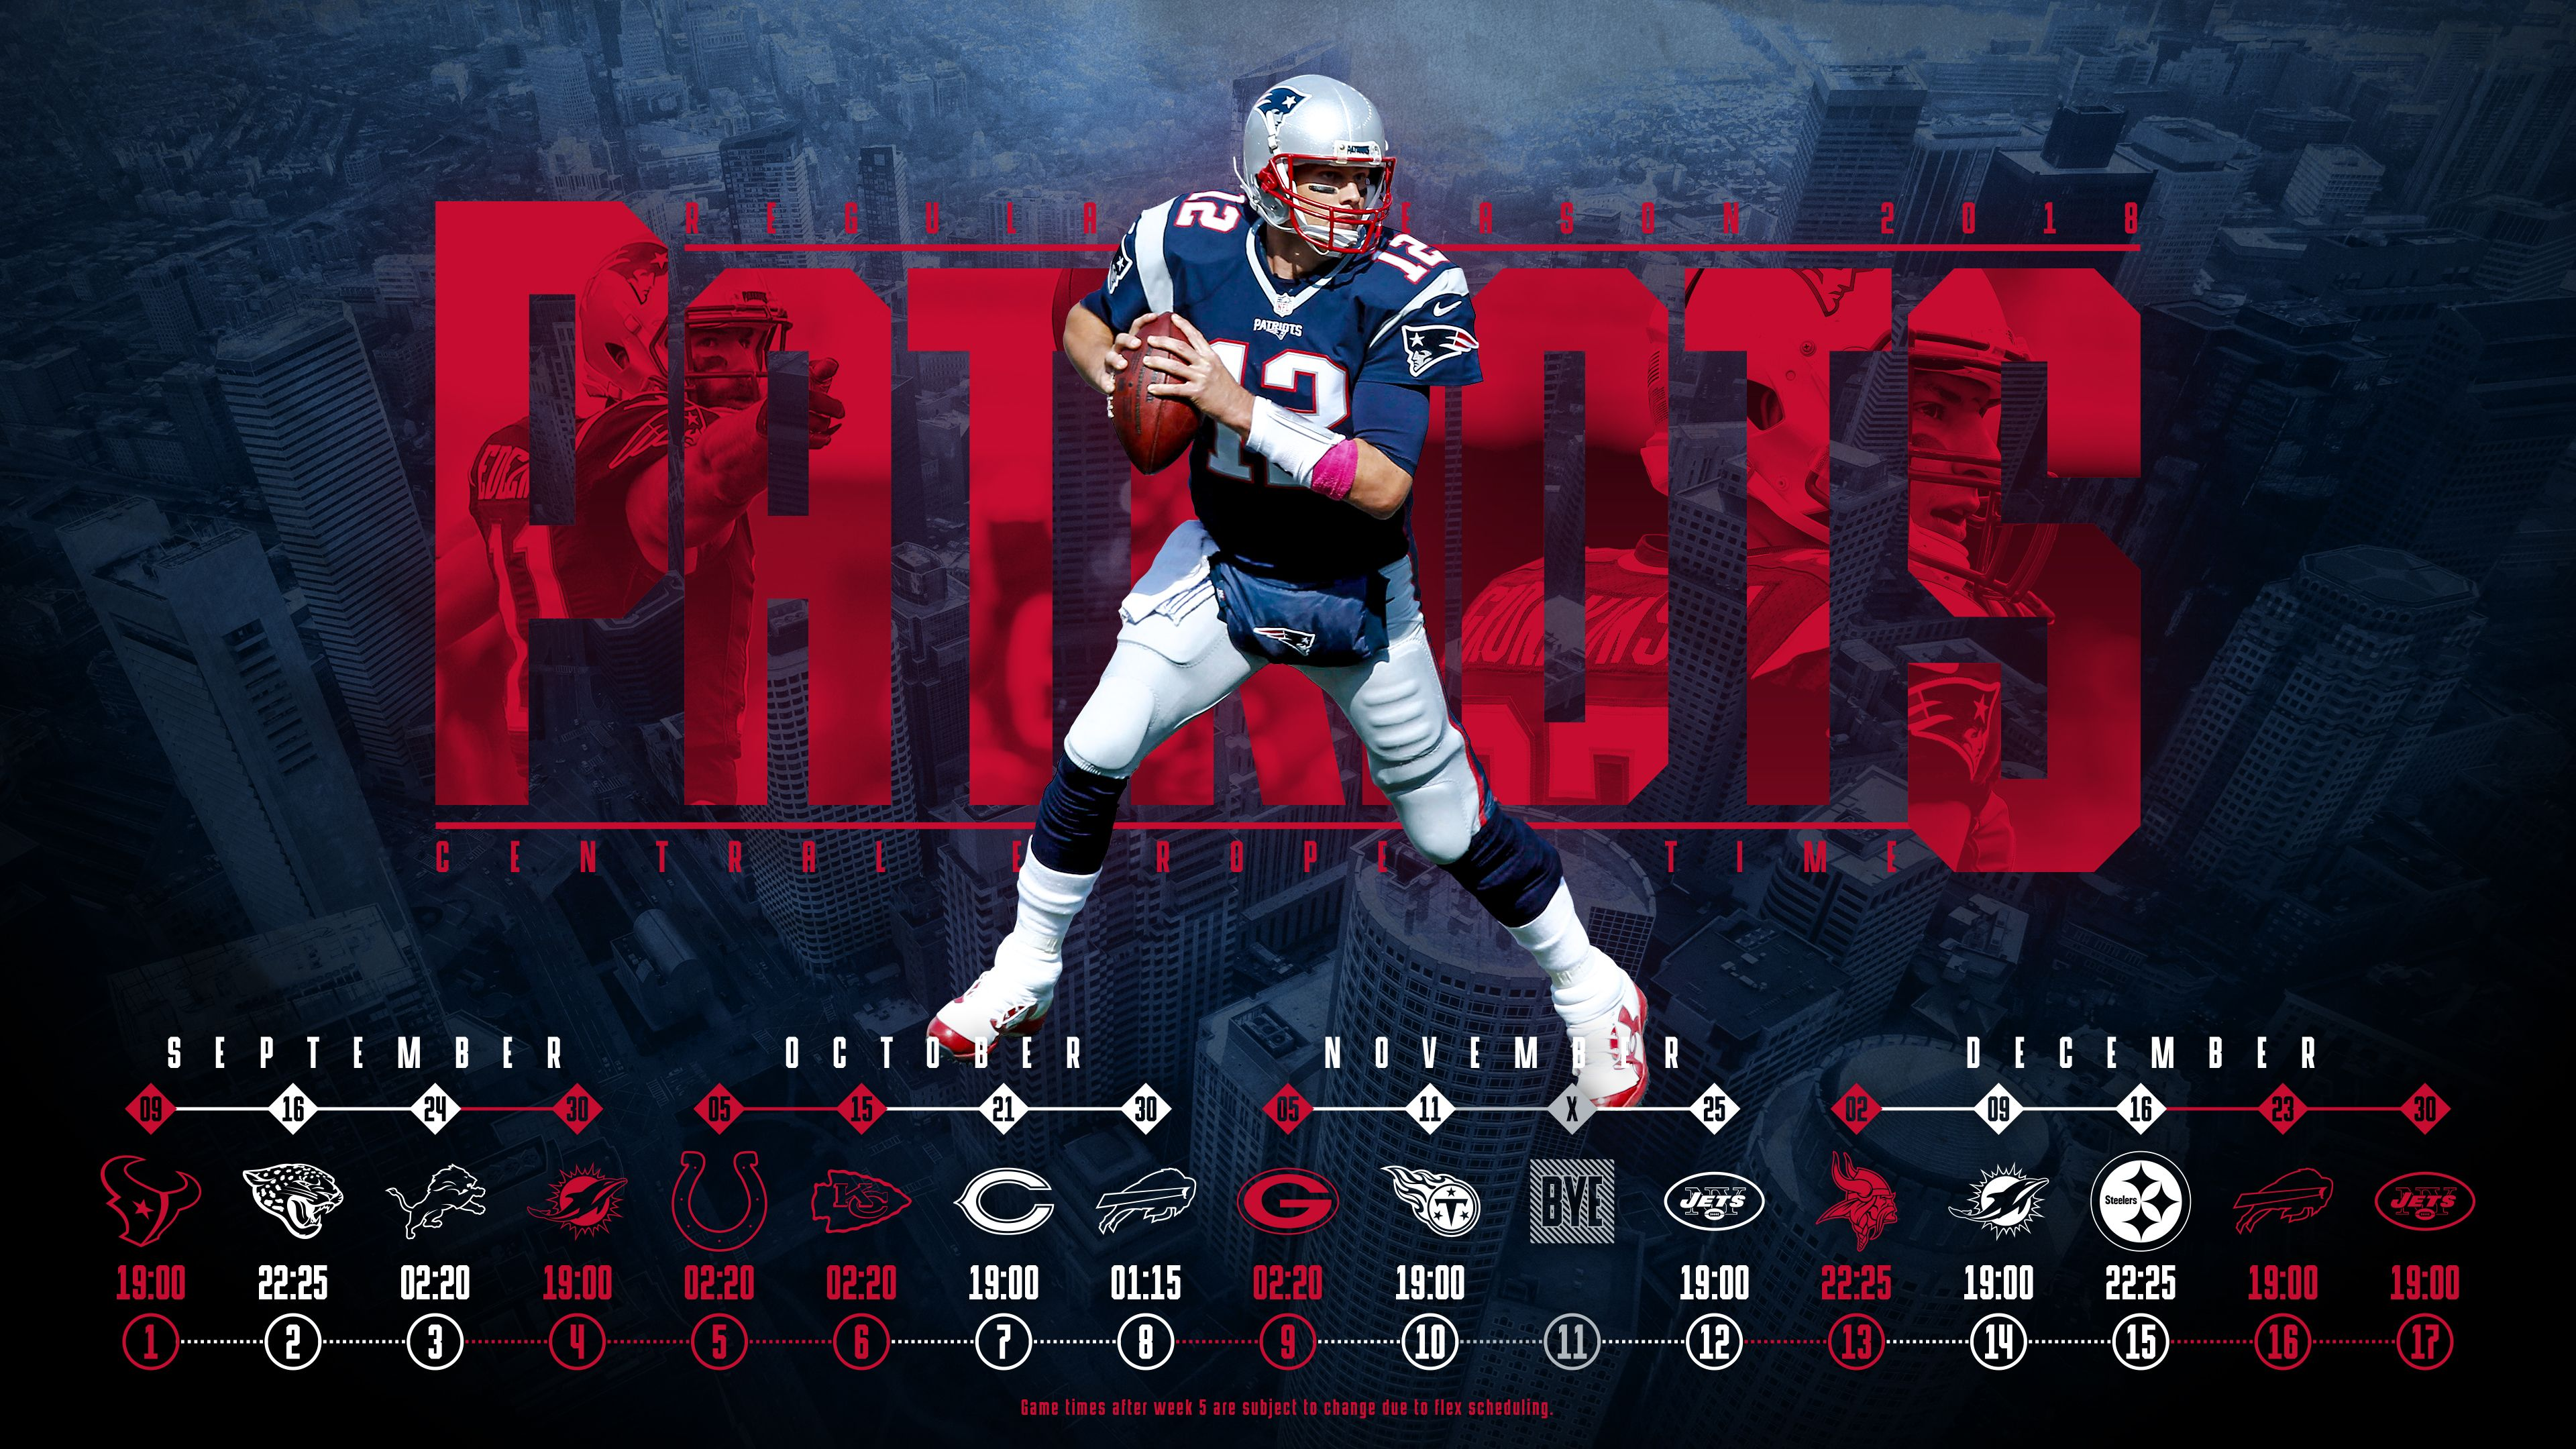 Schedule wallpaper for the New England Patriots Regular